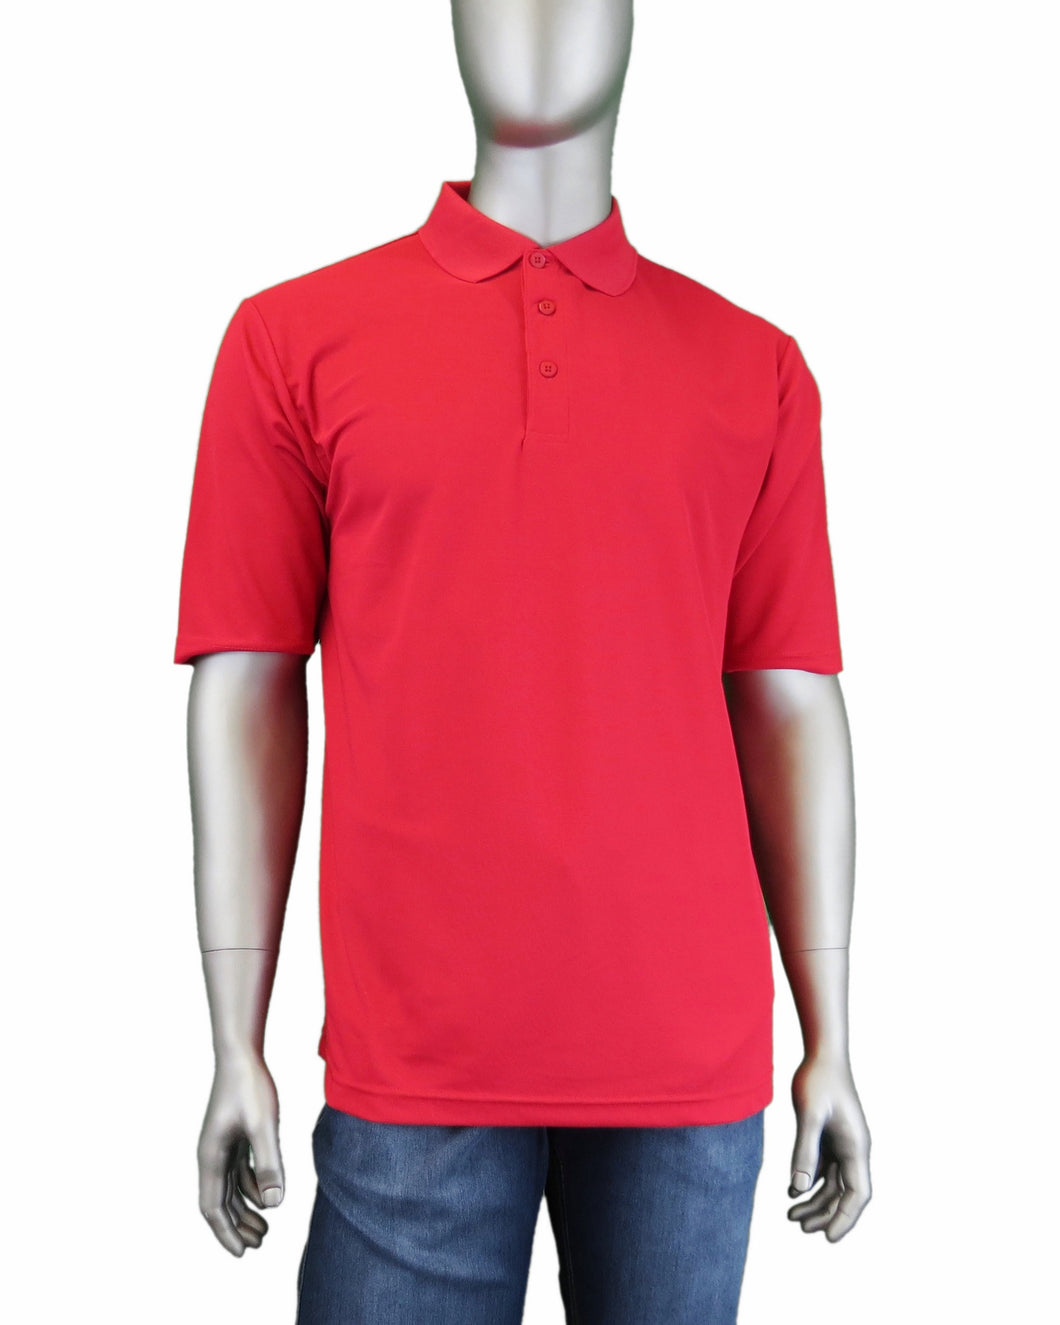 Wild River | ZIGF194 | Polo T-Shirt | Red